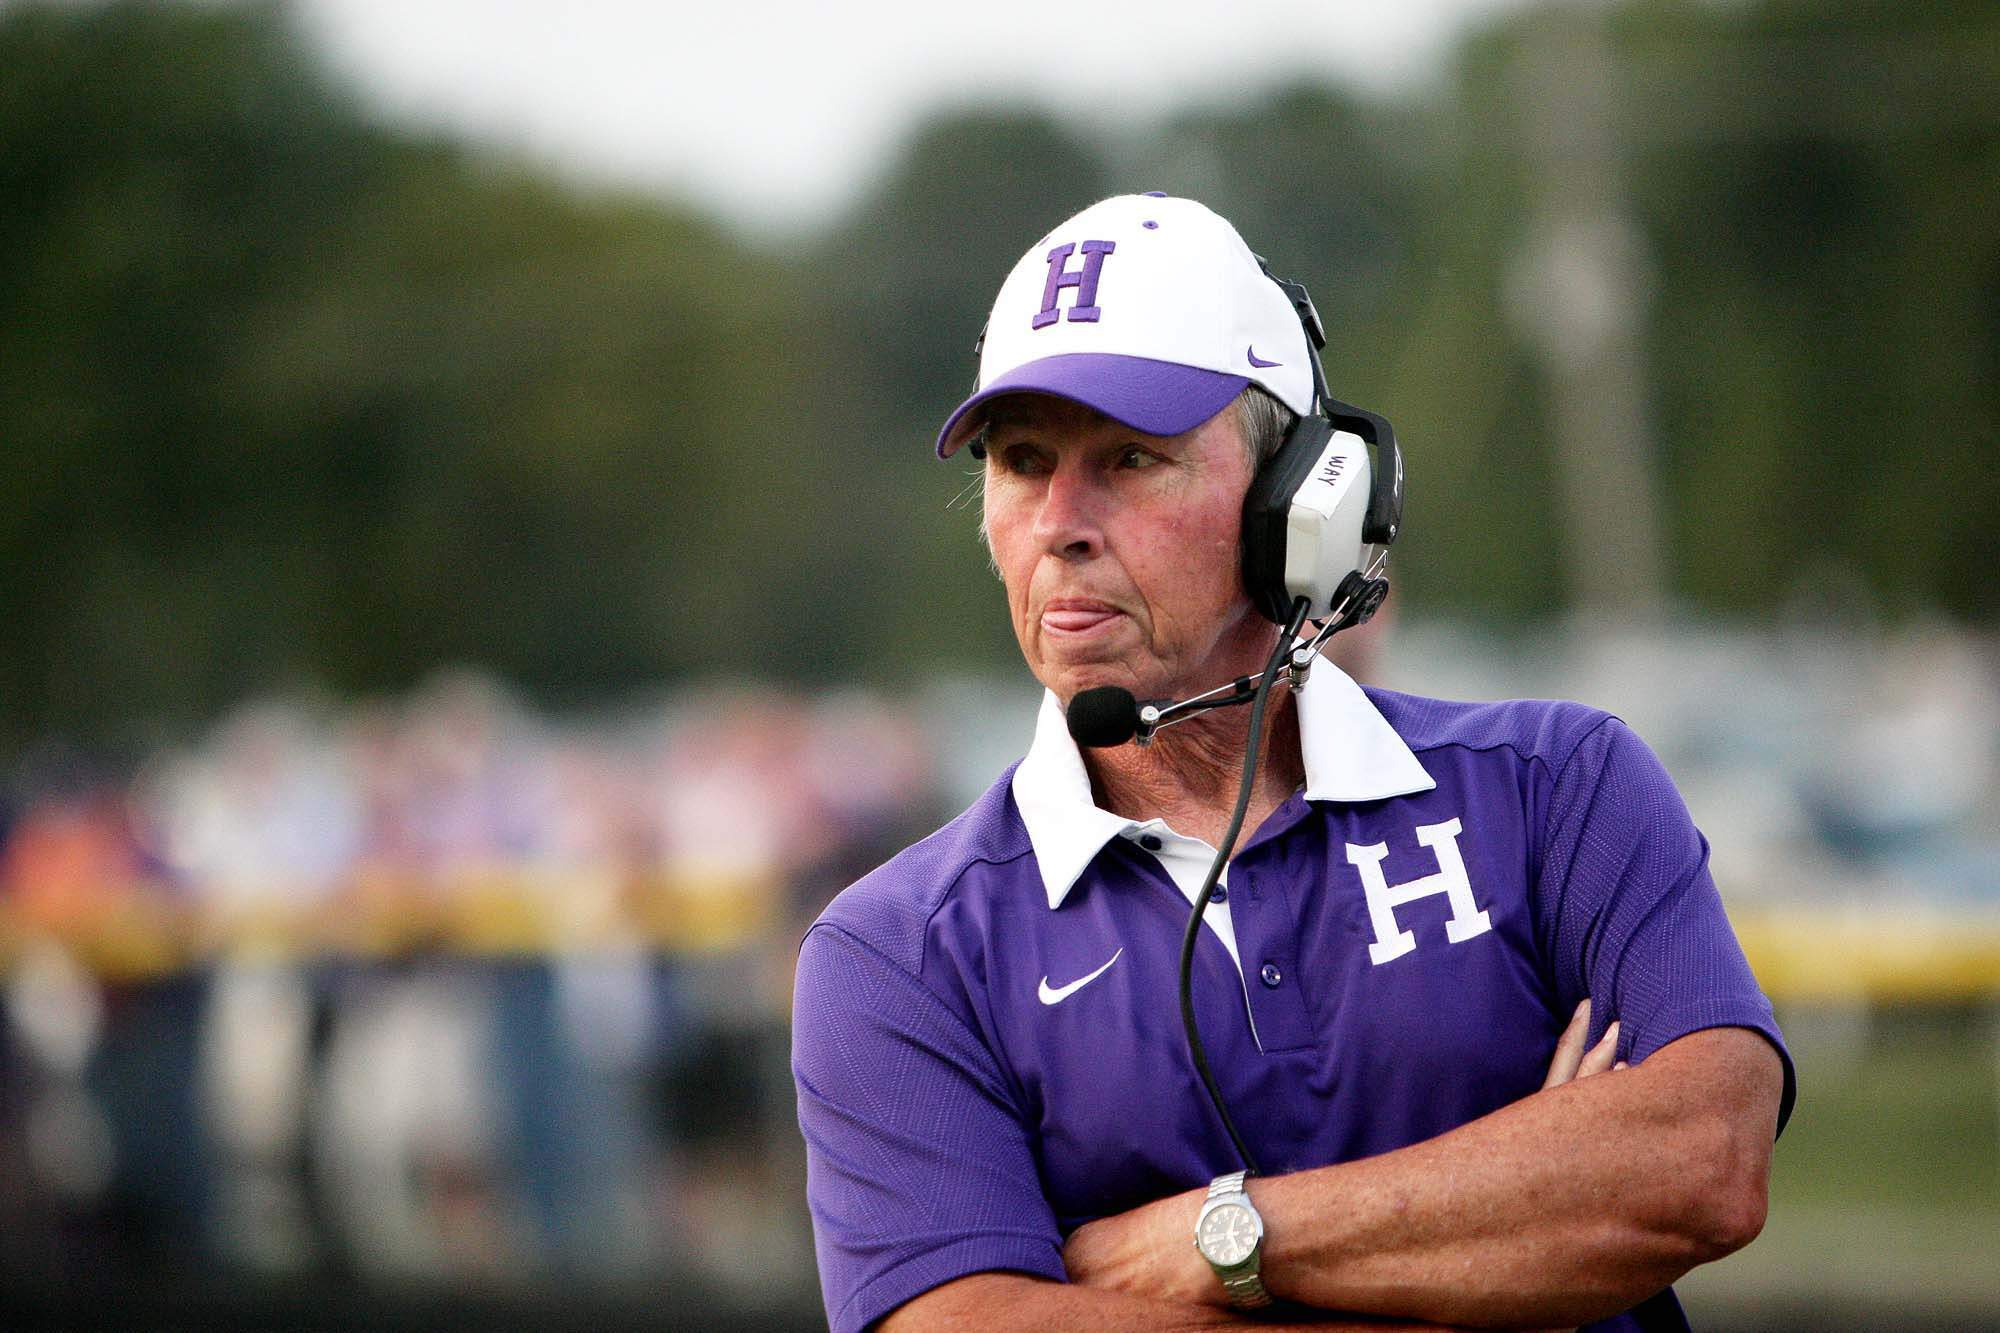 Al Way resigned as head football coach at Harrisburg High School Wednesday, according to the school's athletic director Greg Langley. Way was unavailable for comment.